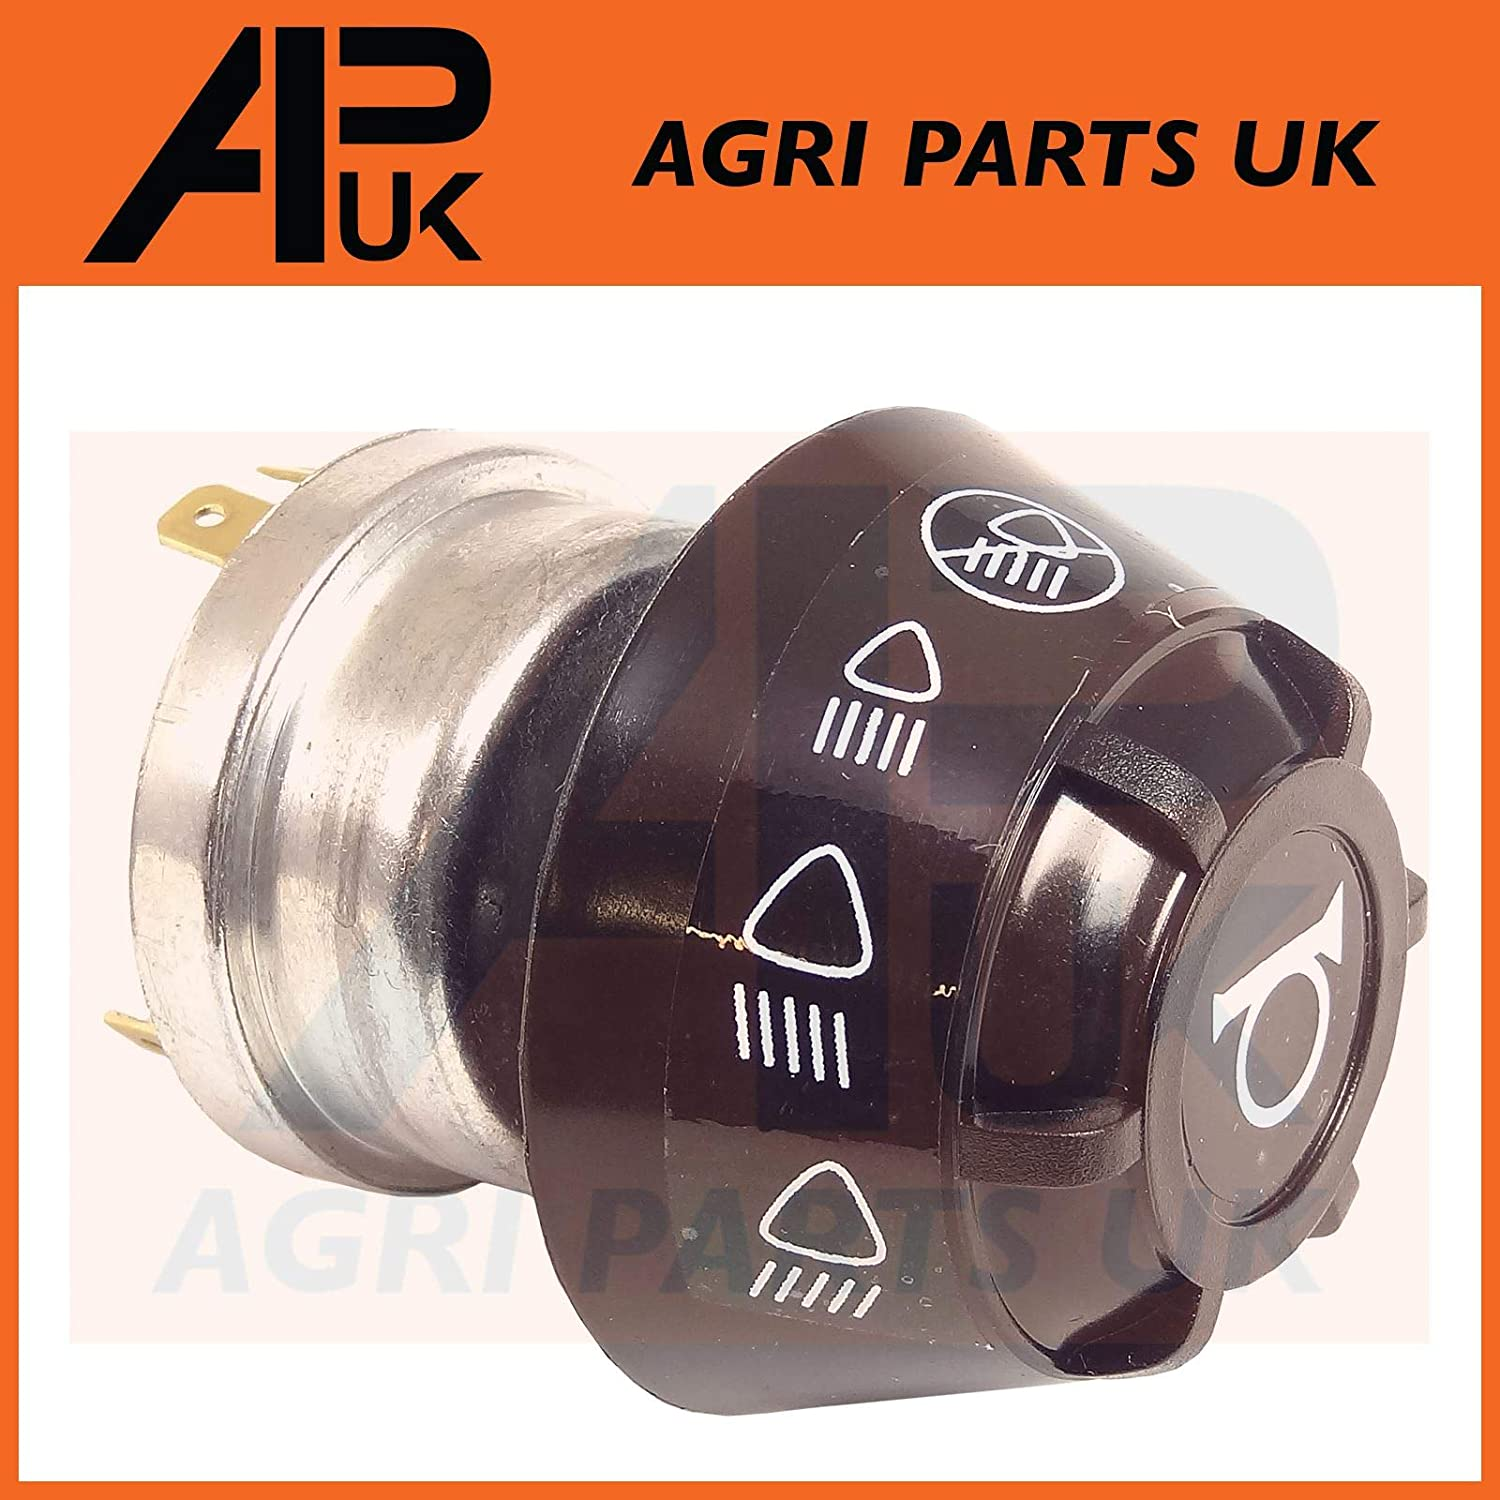 APUK Massey Ferguson 135 165 240 290 590 595 MF Tractor Headlamp Lamp Switch /& Horn